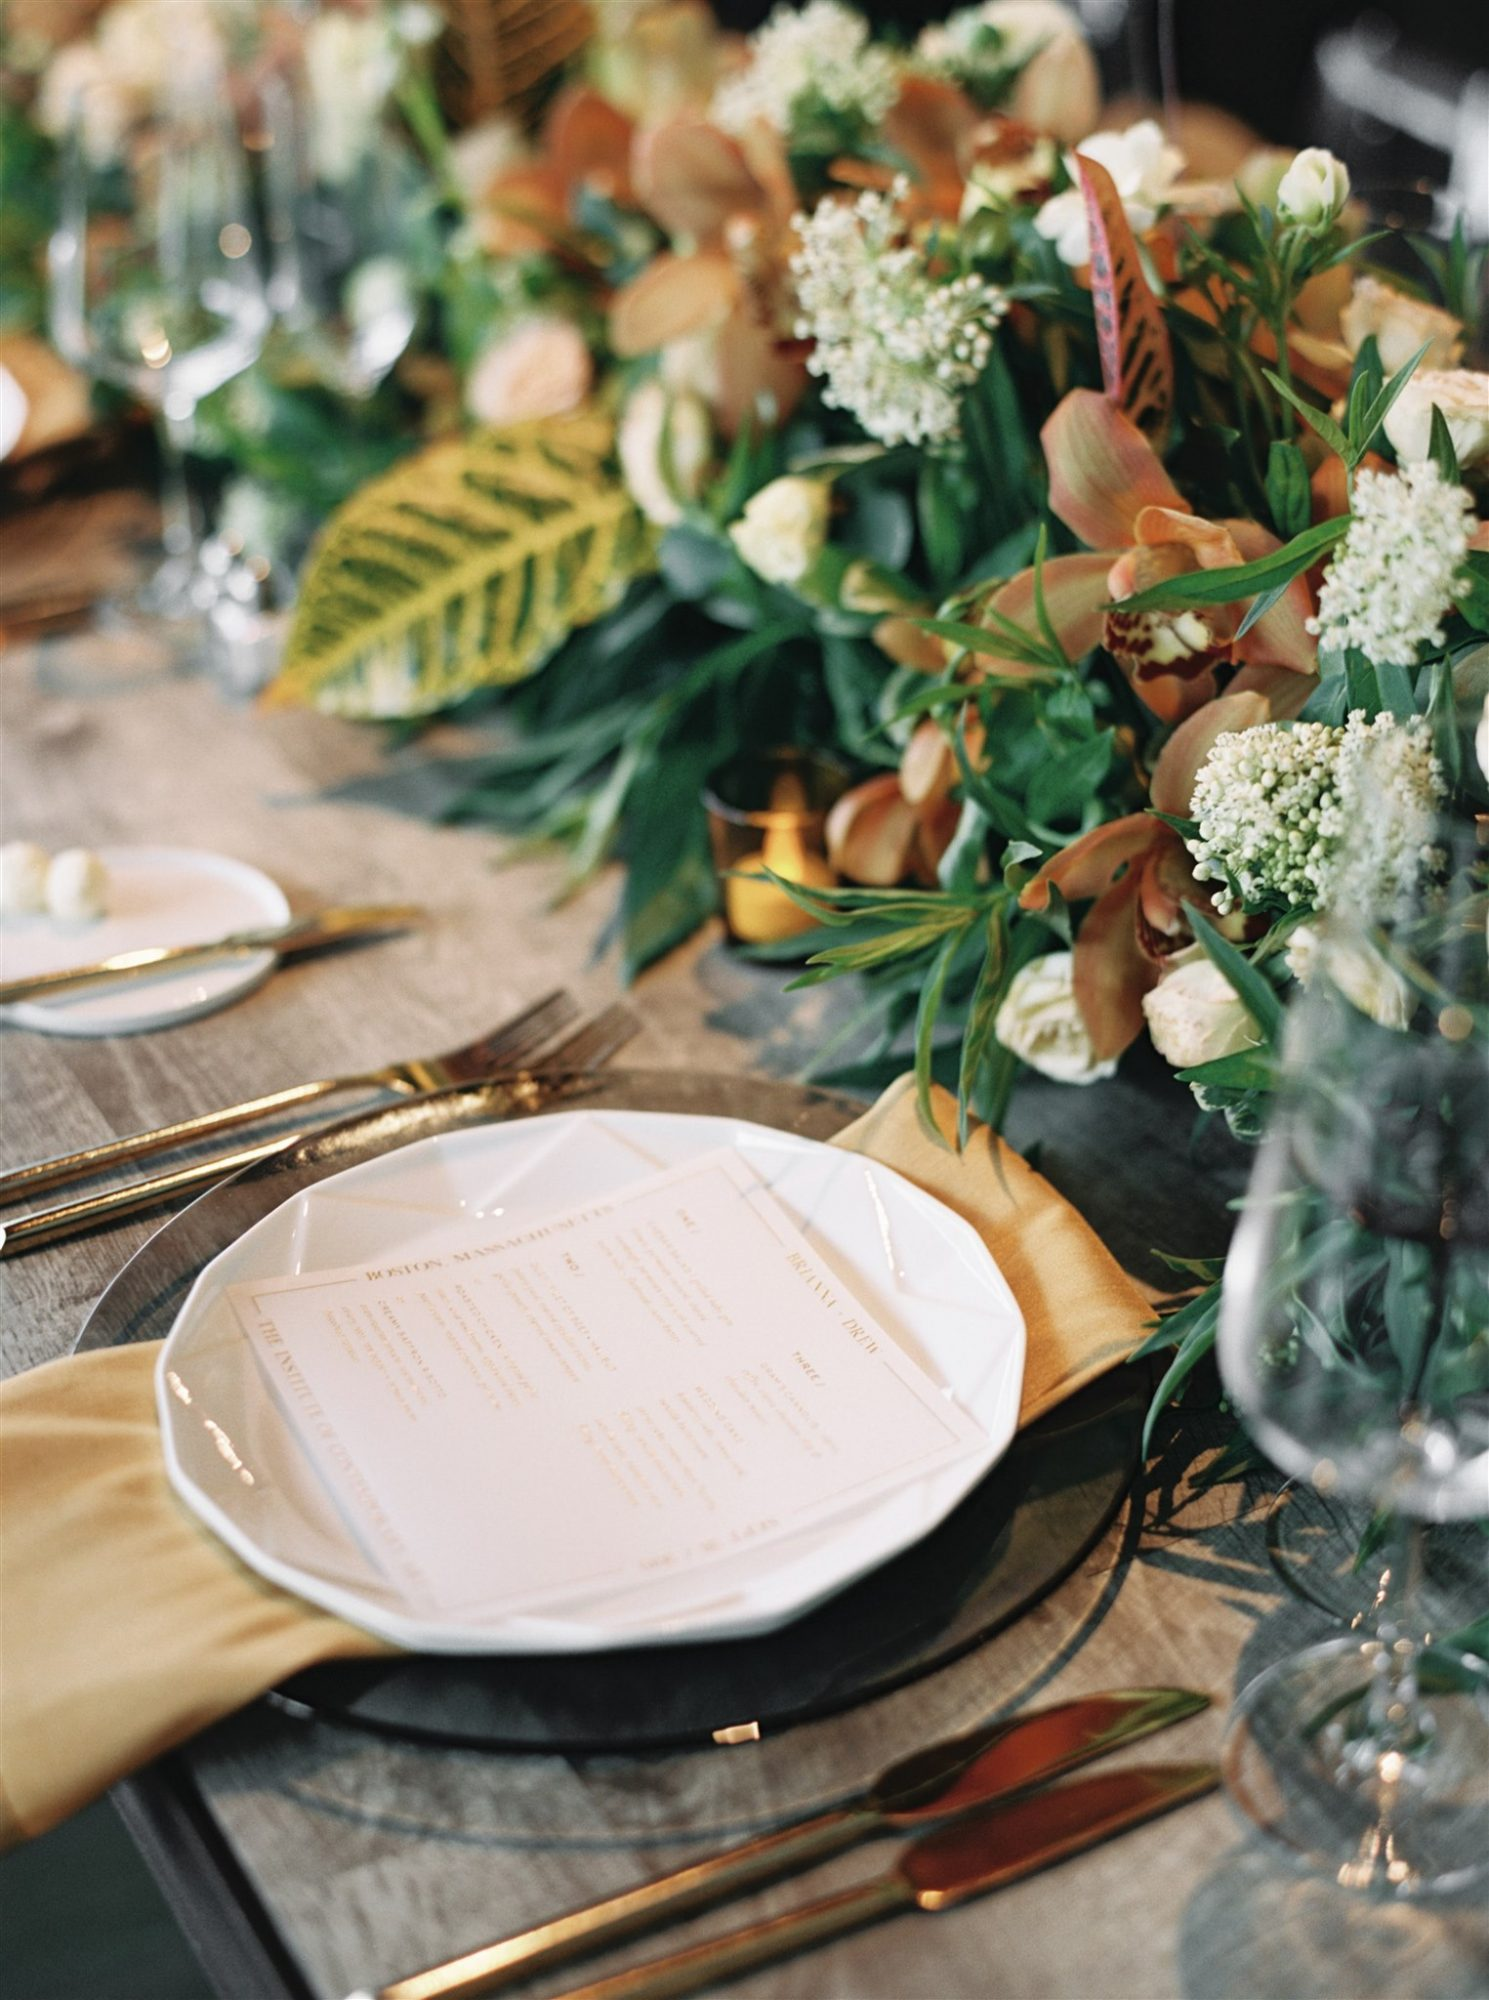 wedding place setting black white and amber on rustic wood table